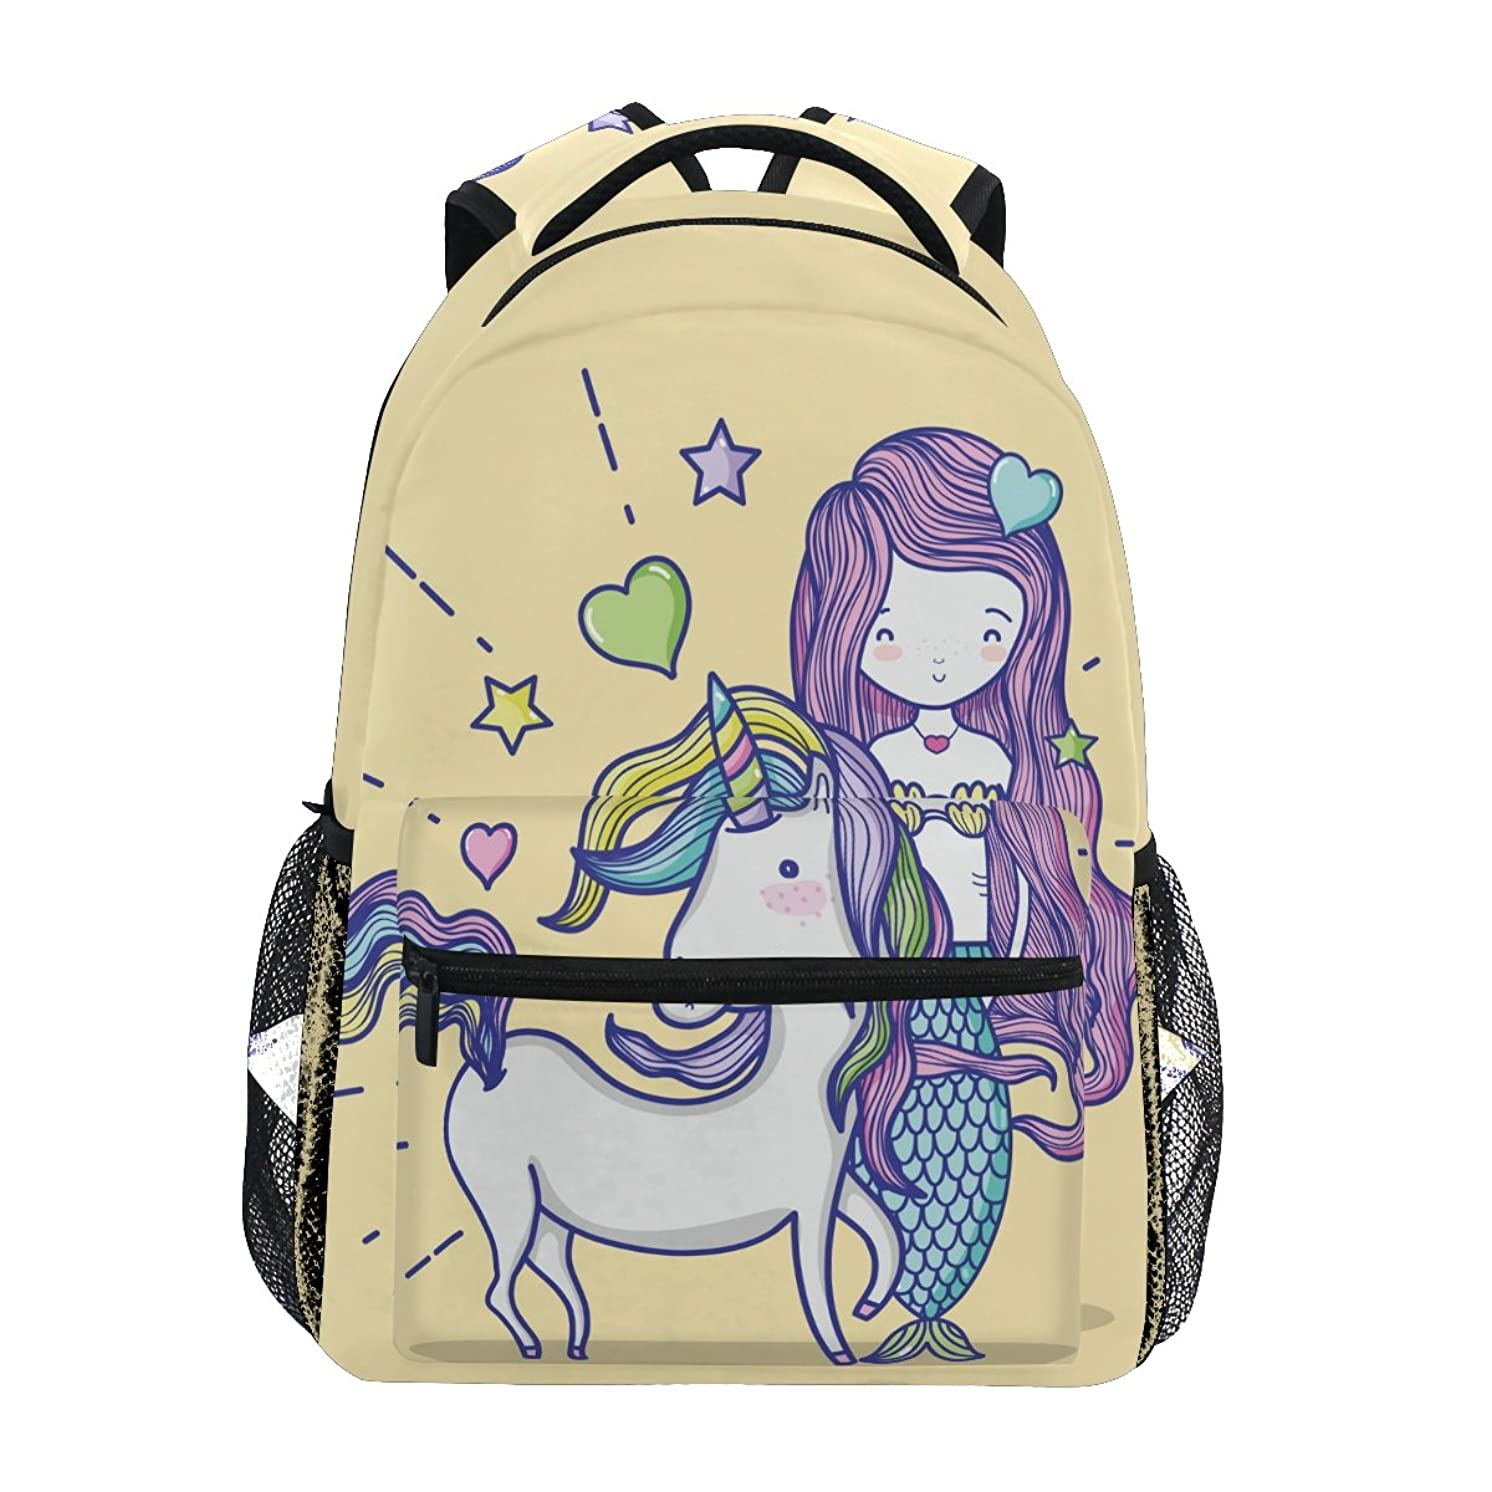 TropicalLife Mermaid Girl Unicorn Backpacks Bookbag Shoulder Backpack Hiking Travel Daypack Casual Bags